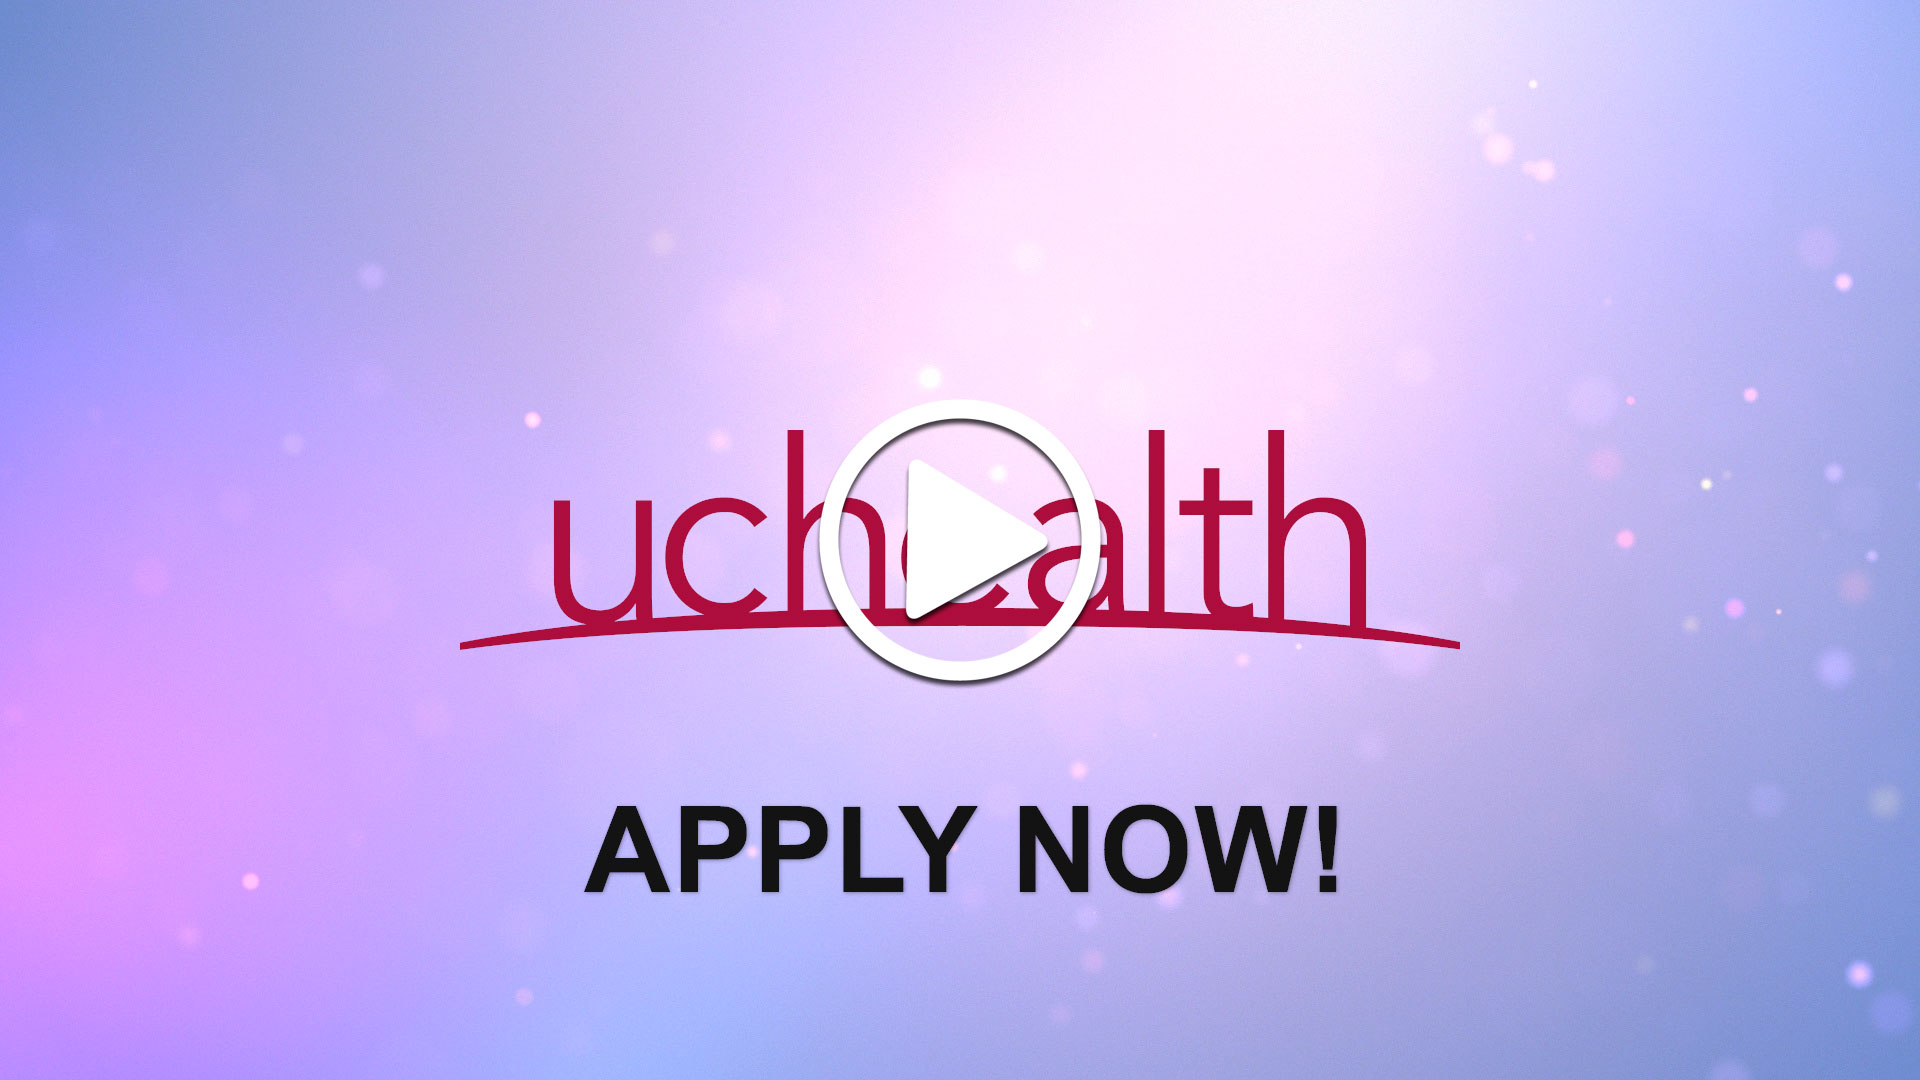 Watch our careers video for available job opening Palliative Medicine - Physician - Fort Collins, C in Fort Collins, CO, USA